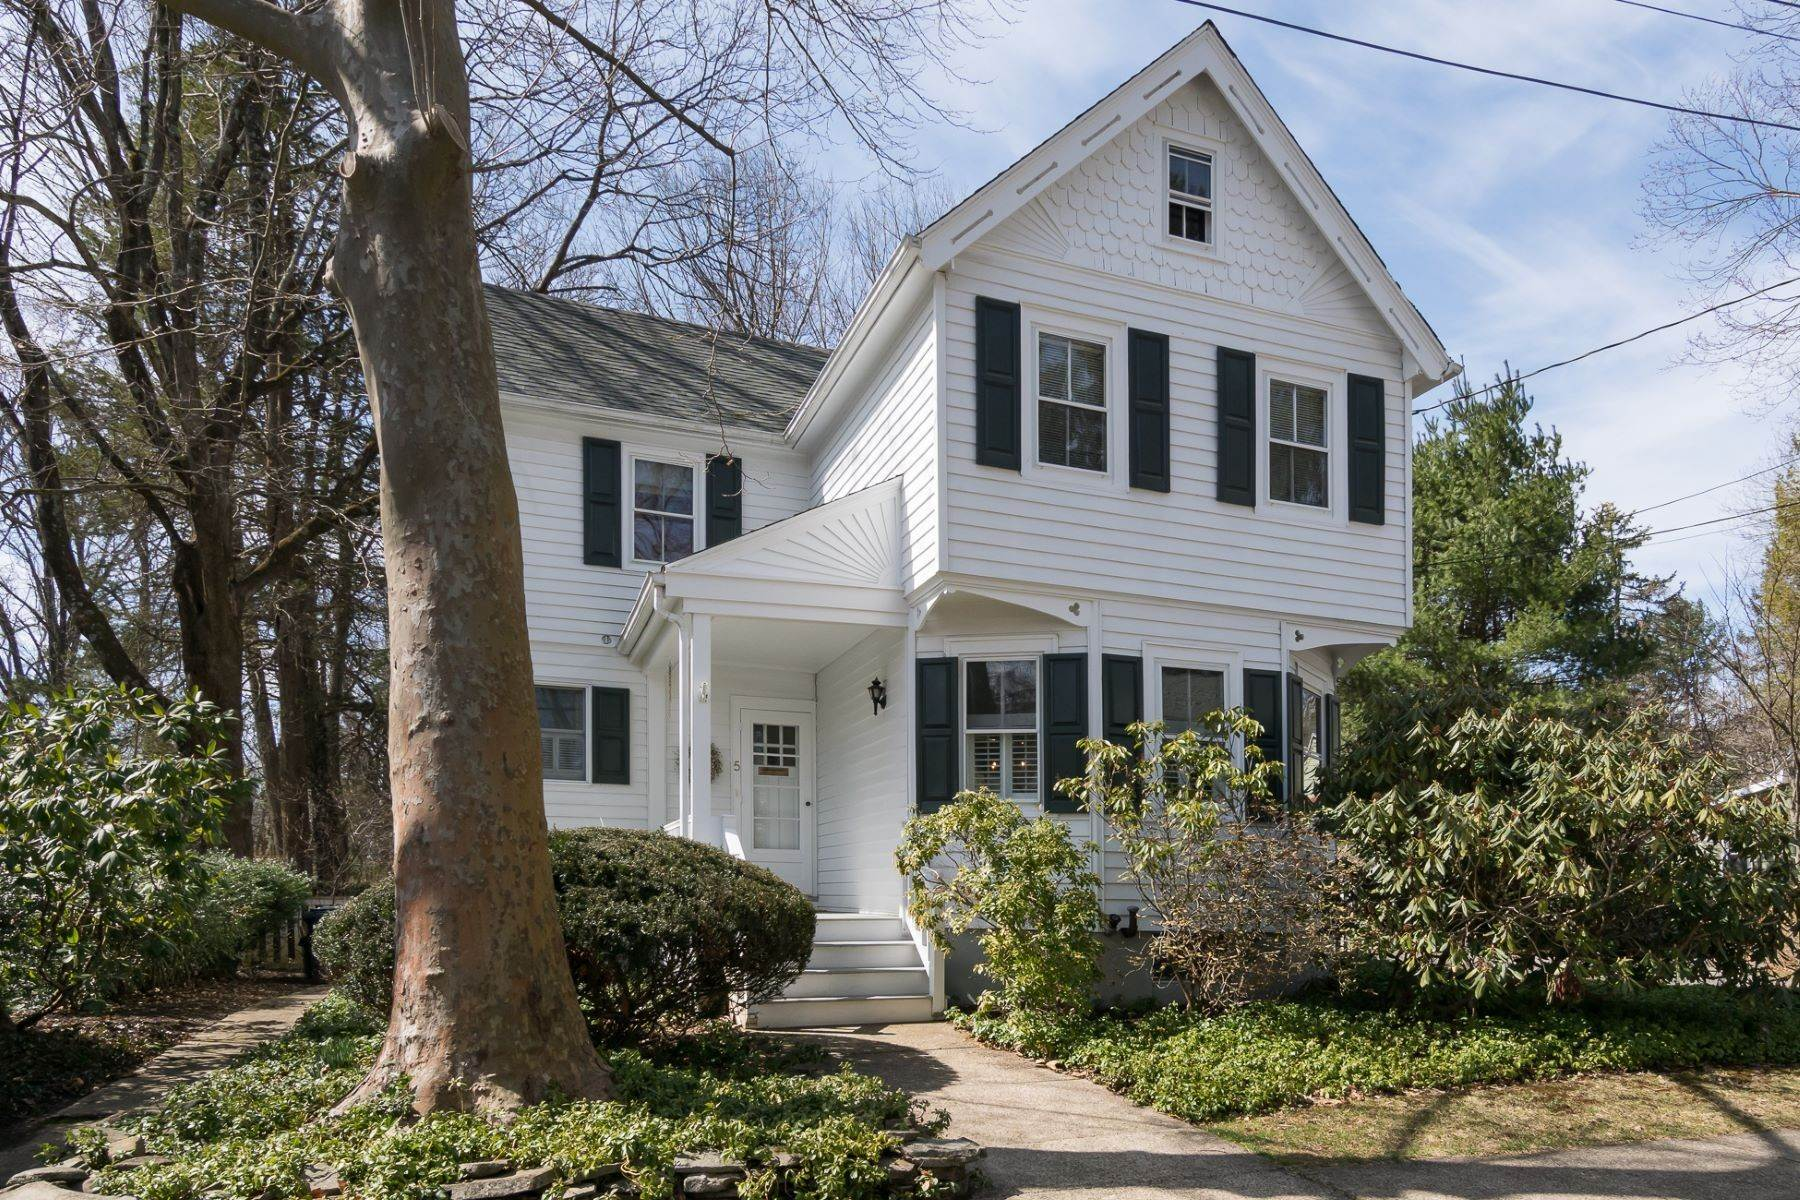 4. Single Family Homes for Sale at Storybook Home on a Stroll-Everywhere Street 5 Titus Avenue, Lawrenceville, New Jersey 08648 United States